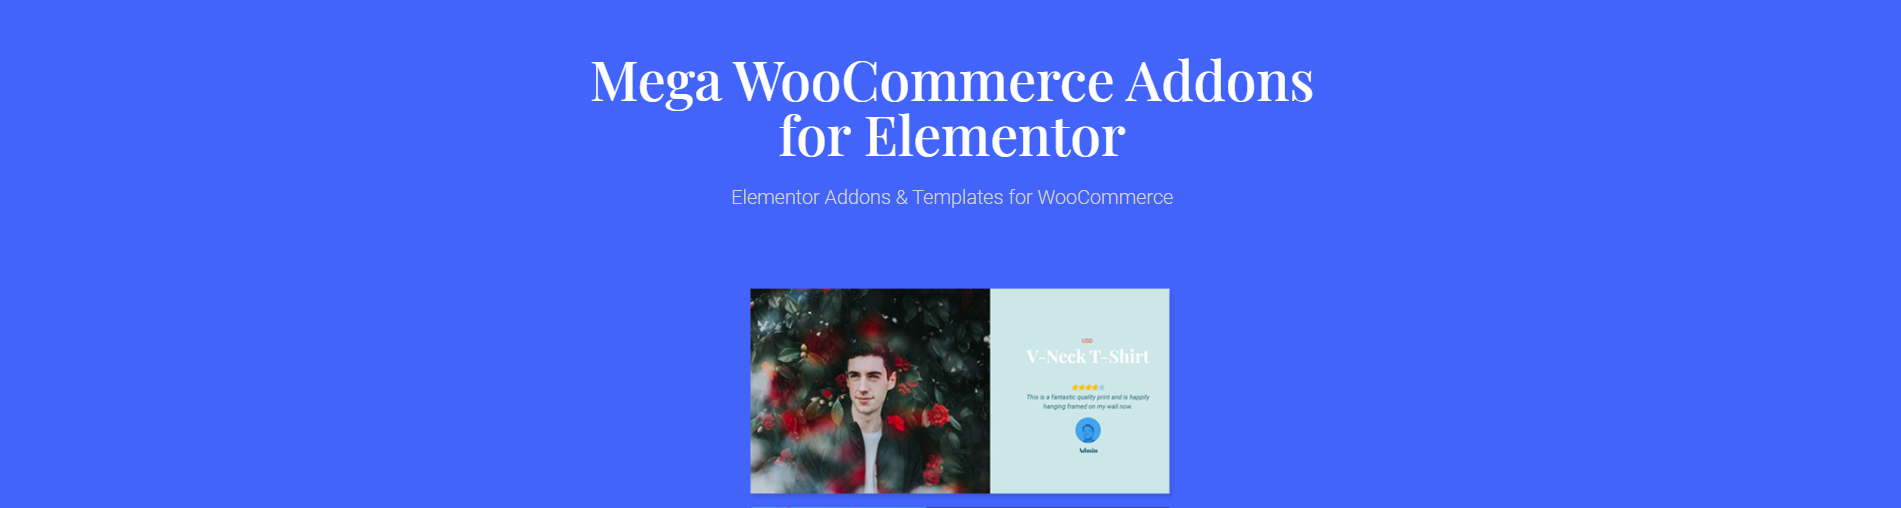 elementor woocommerce add-ons 6